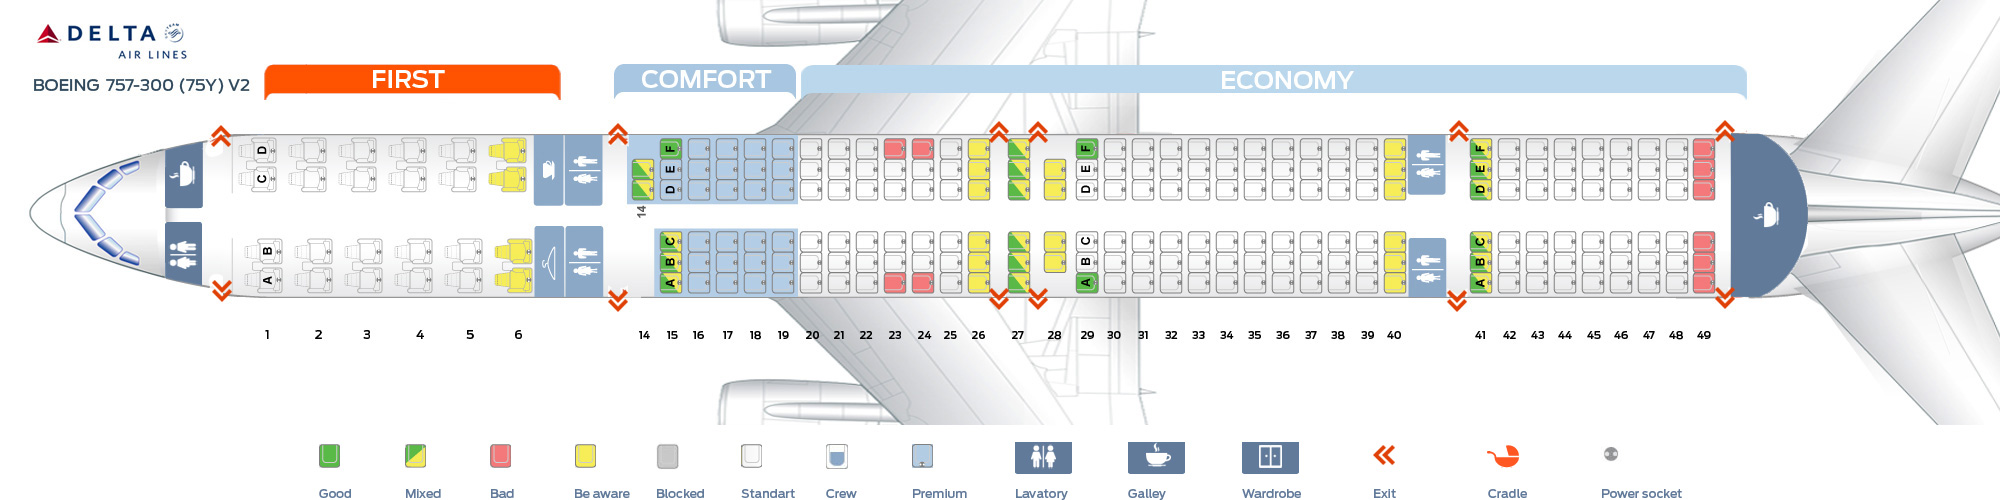 Seat Map Boeing 757 300 Delta Airlines Best Seats In Plane